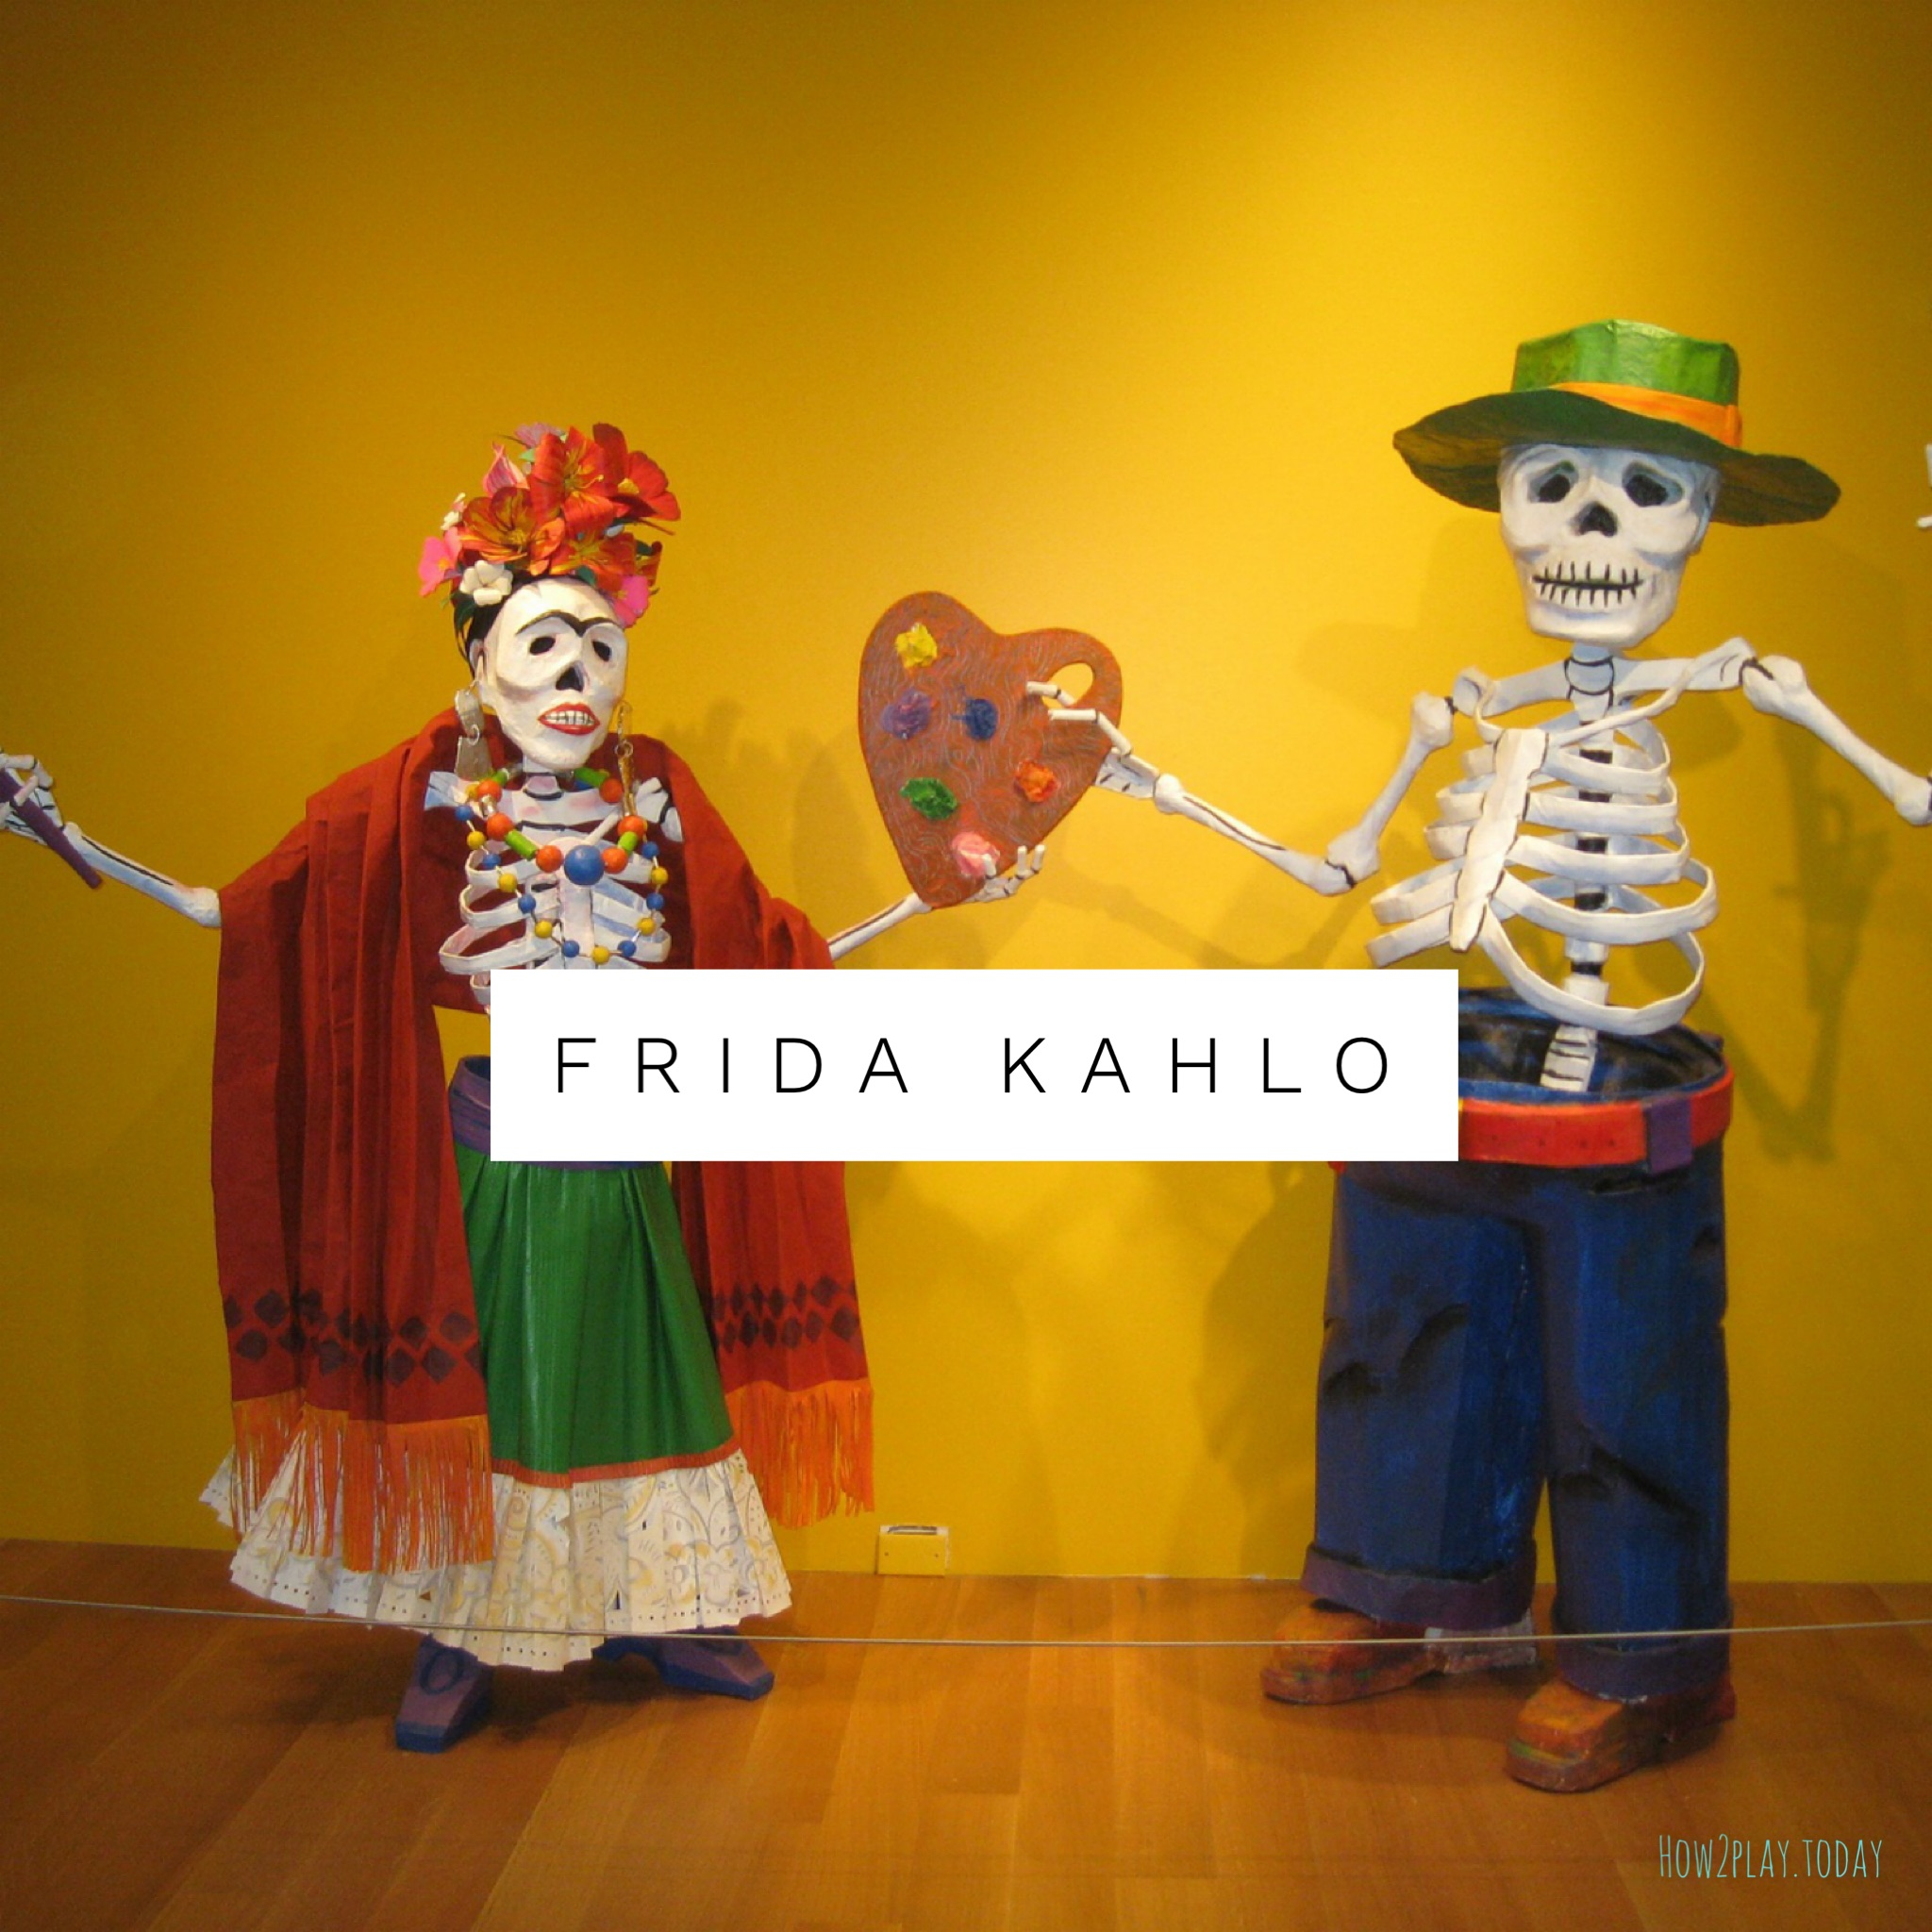 Friday Kahlo inspired art learning / lesson plans for kids. Come explore sugar skulss for preschool and elementary age children. Children will learn Elements of Art, Principles of Design while having the freedom of creative expression.